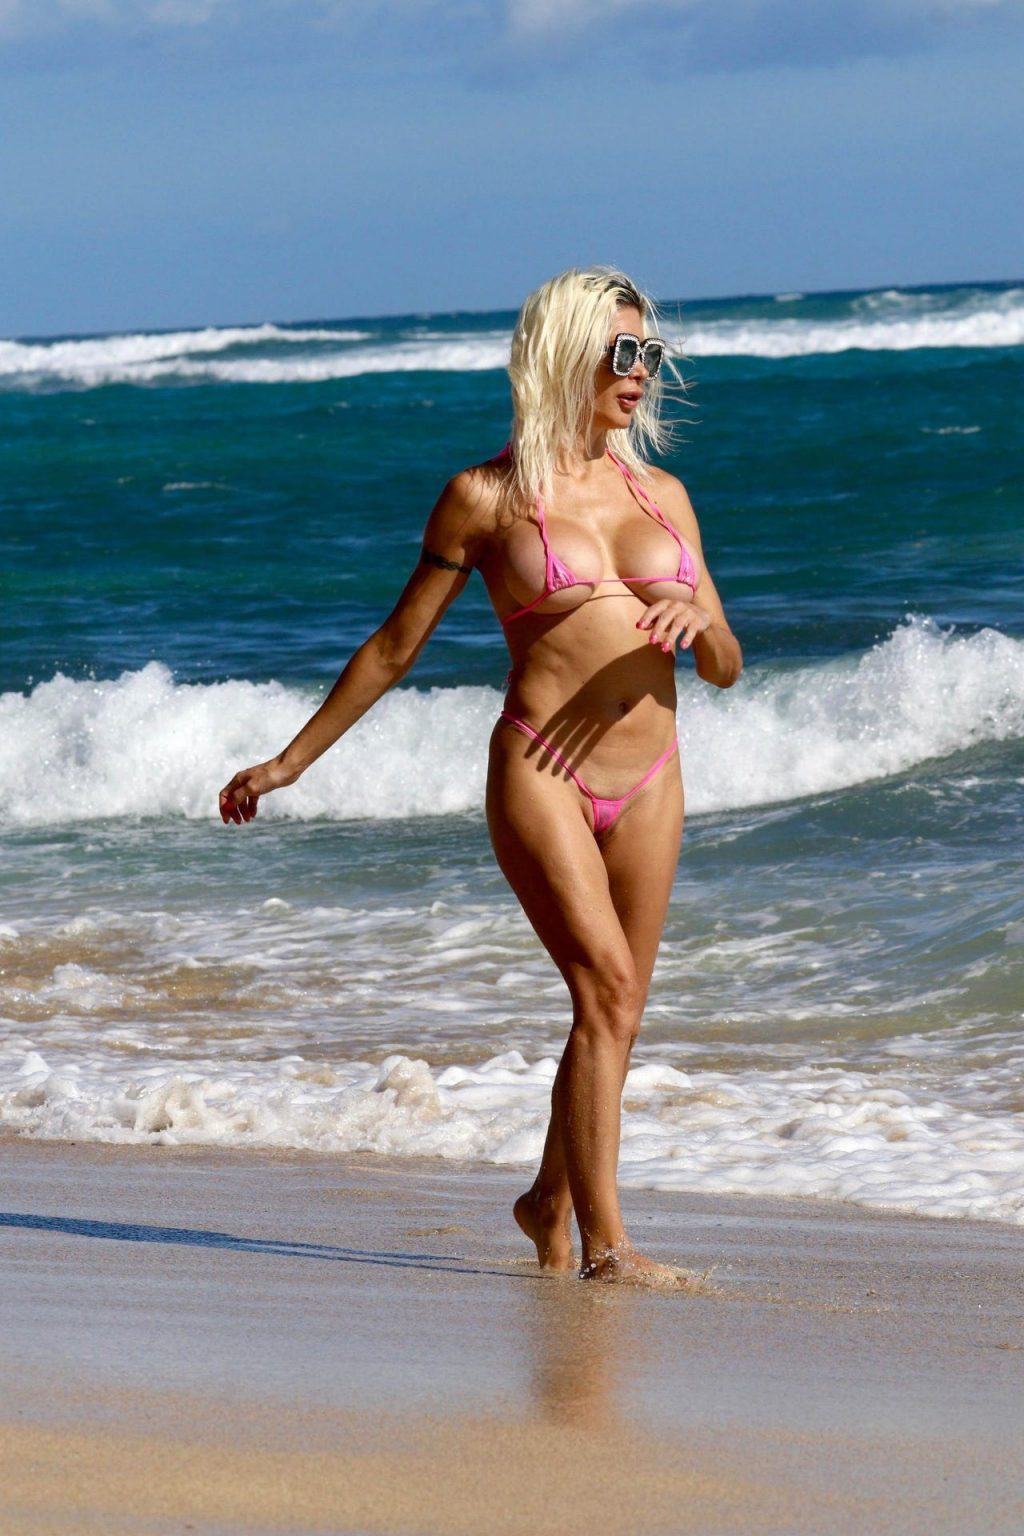 Frenchy Morgan Poses in a Bikini and Shows Her Nude Boobs on the Beach (10 Photos)